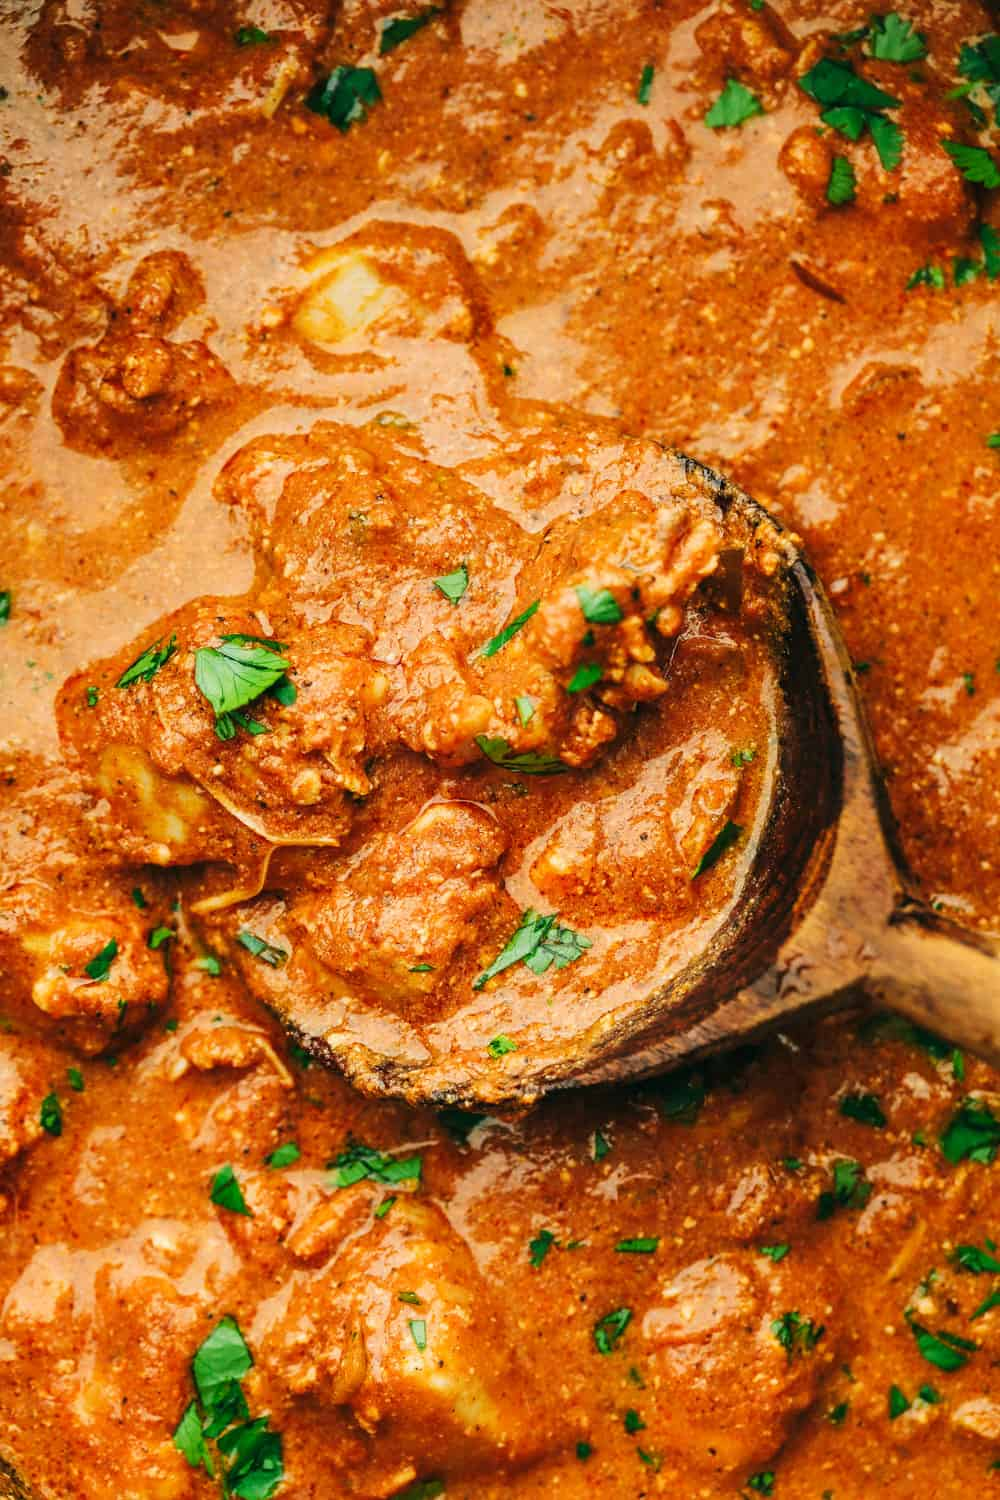 Chicken tikka masala on a spoon showing the chicken and orange colored sauce.